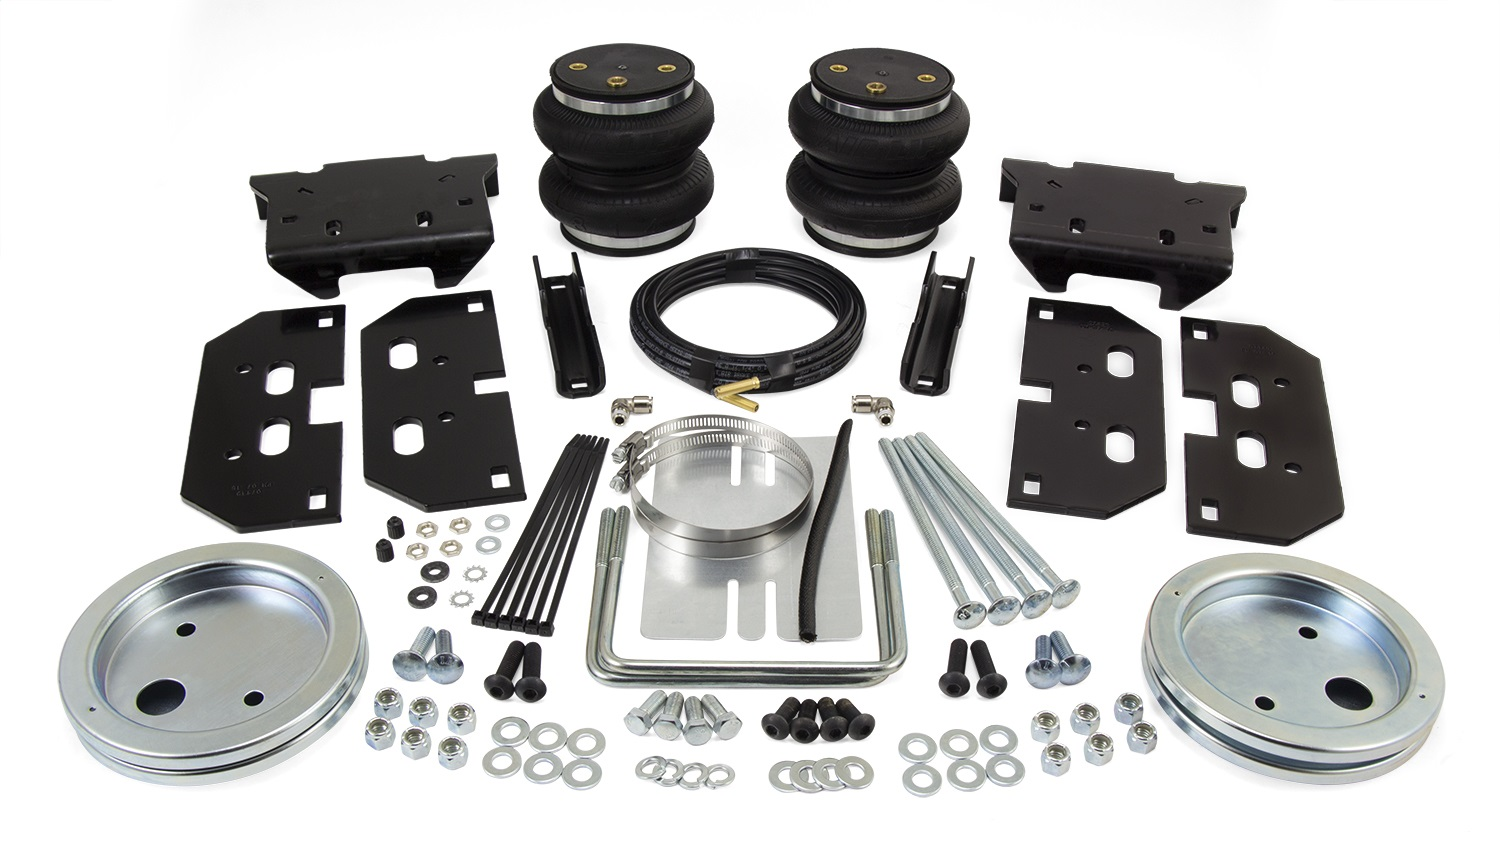 Air Lift 57297 LoadLifter 5000 Leveling Kit Fits 2500 3500 Ram 2500 Ram 3500